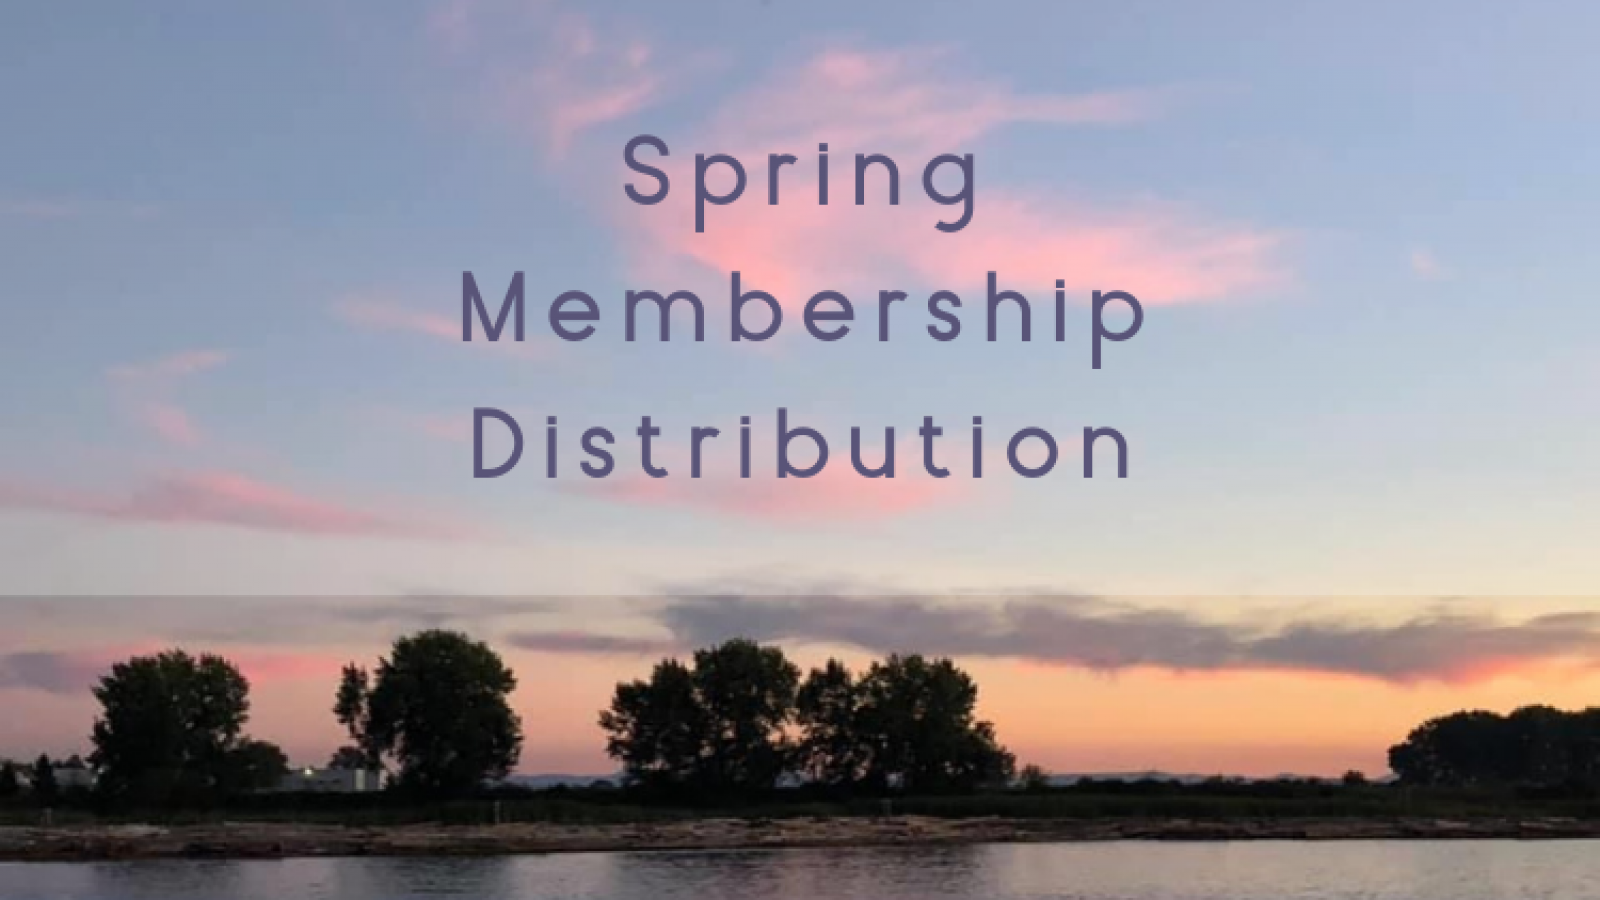 Photo of a sunset on the Fraser River with text Spring Membership Distribution